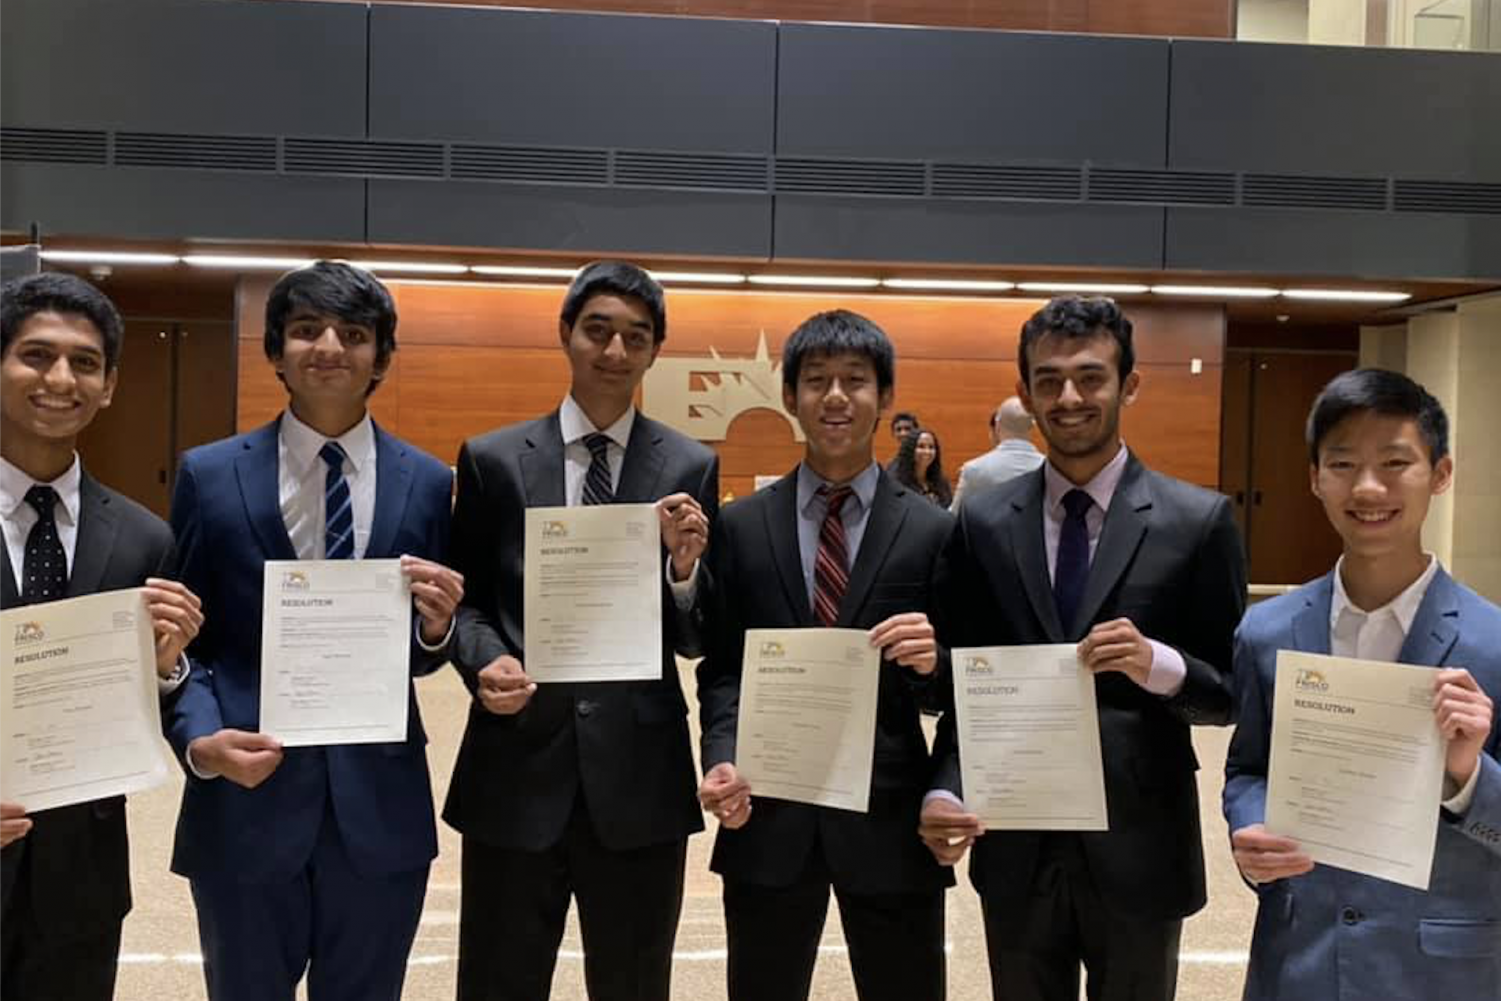 Students (from left to right) junior Tom Punnen and seniors Kapil Rampalli, Keshav Narasimhan, Johnathan Peng, Kunal Dhawan, and Zachary Suzuki hold up certificates. The six Redhawks were among other students honored at the school board meeting Monday night for receiving a perfect score on the SAT or ACT.